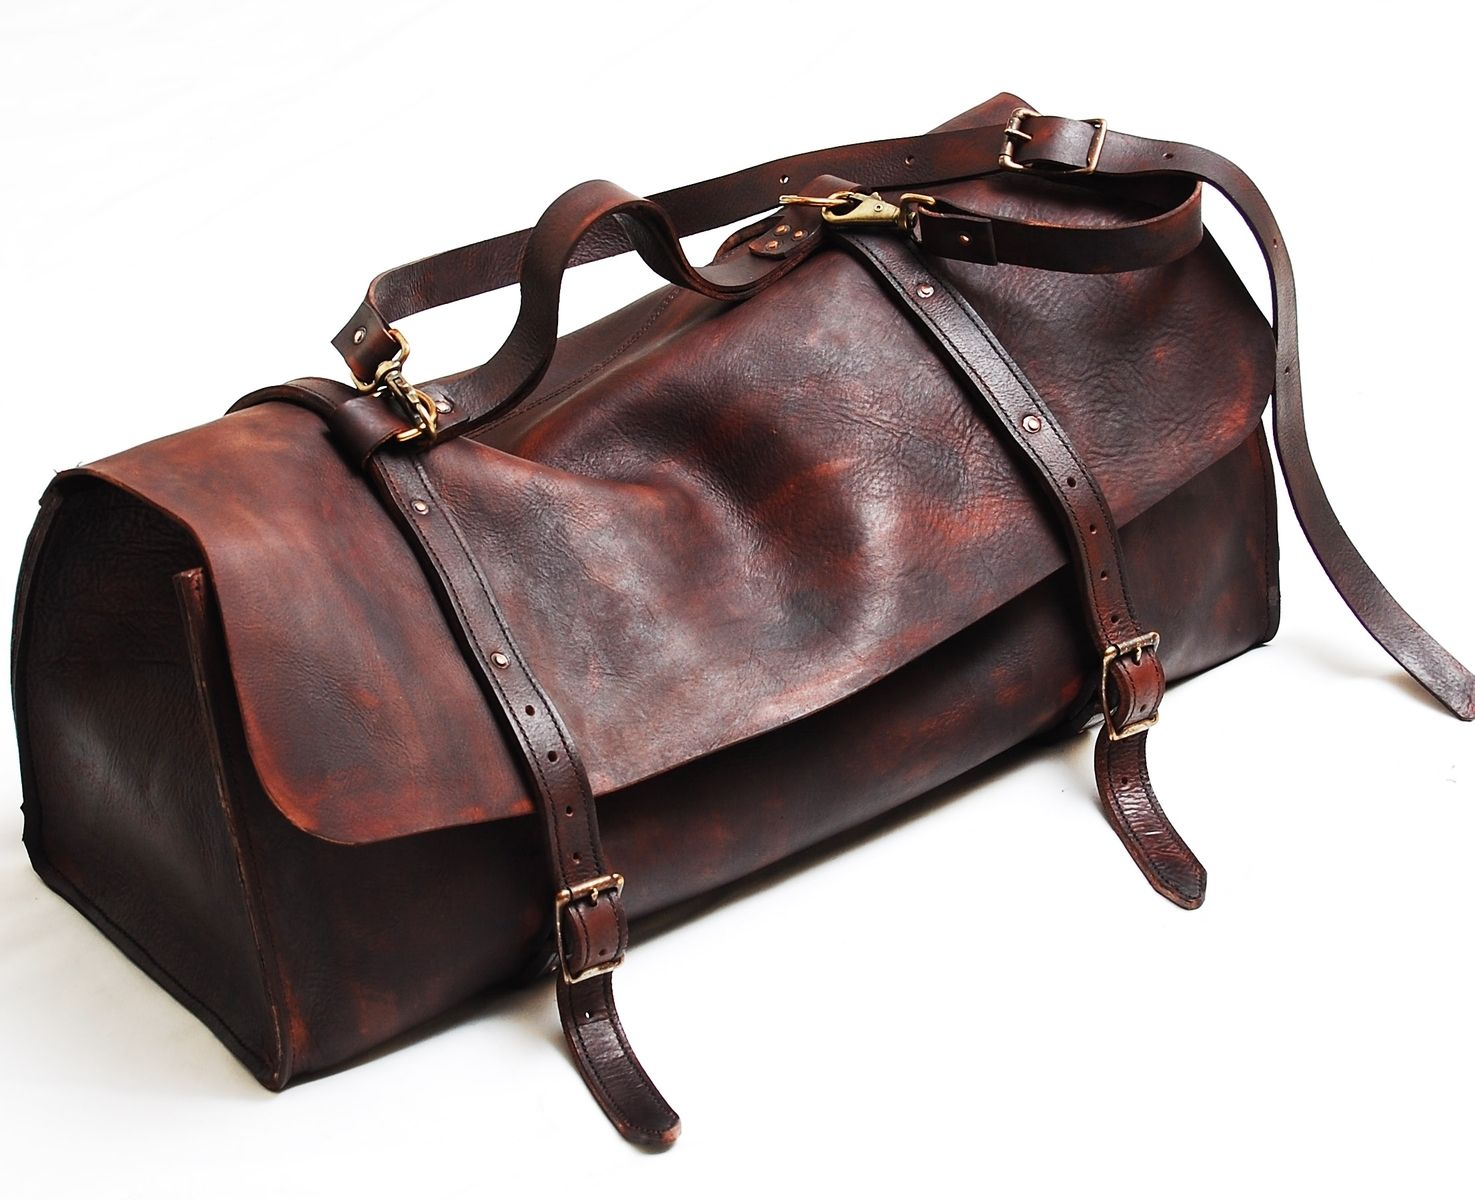 Custom Duffel Bags | CustomMade.com